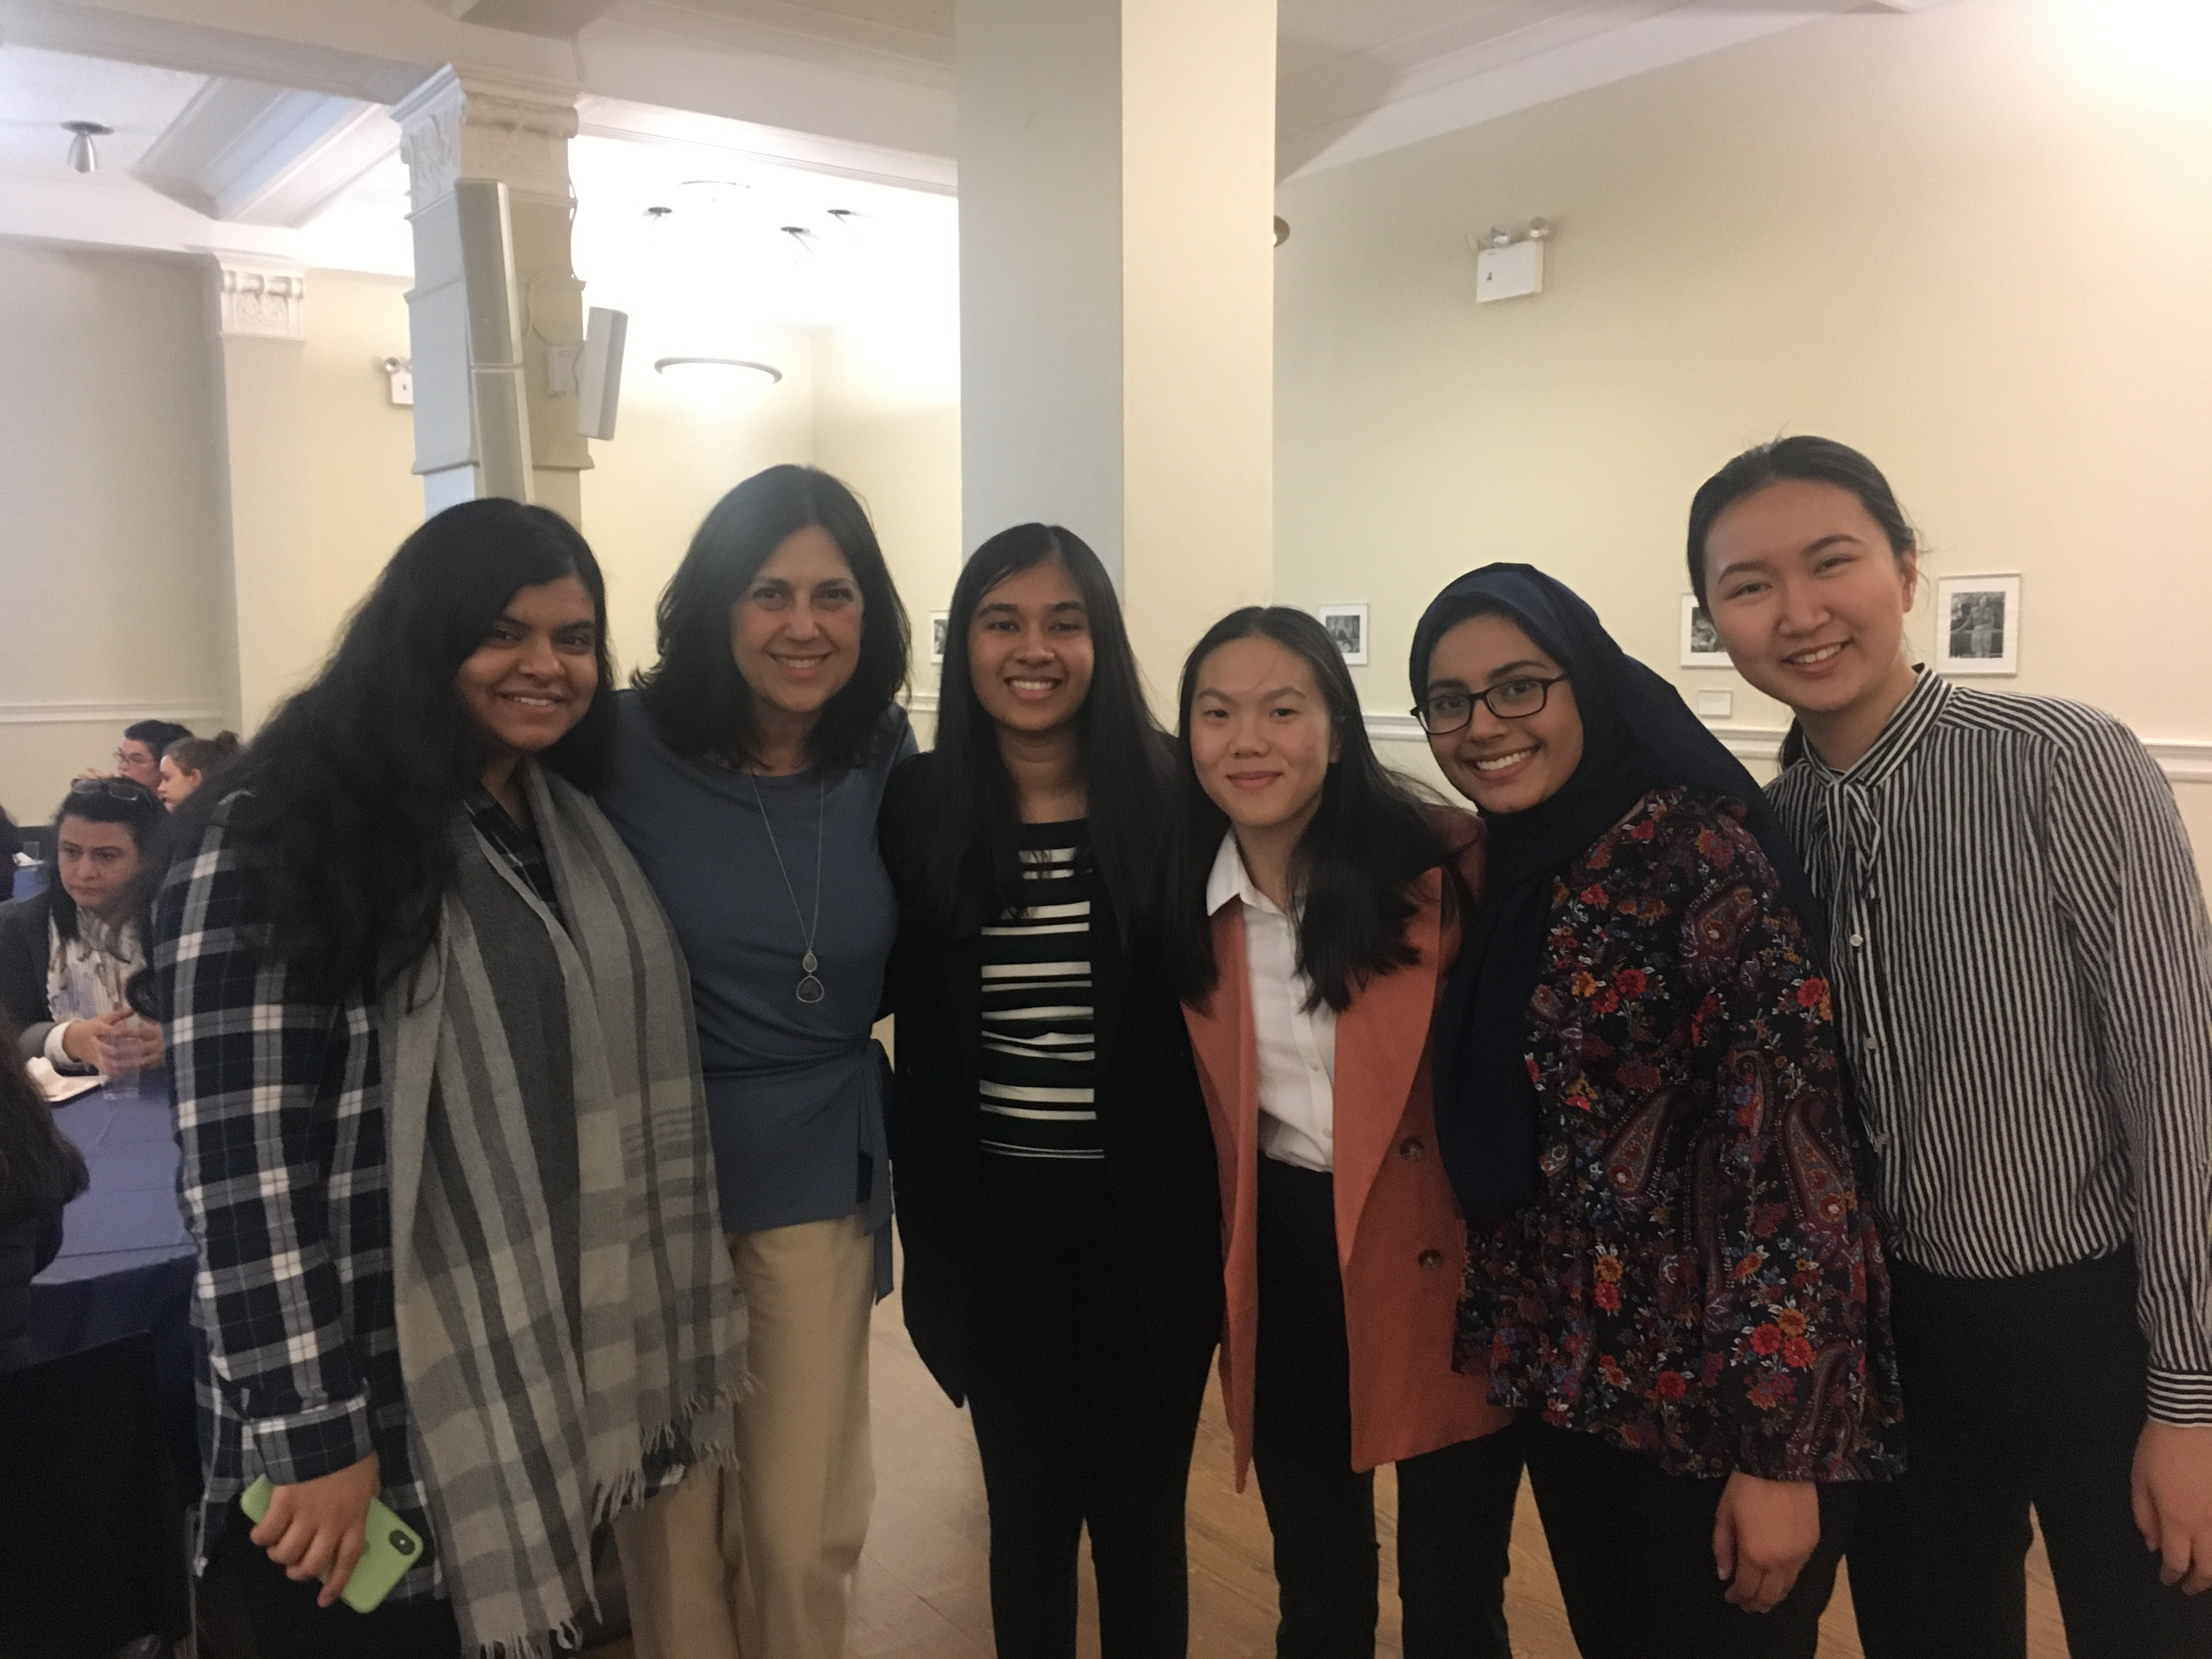 Group of students and alumnae at a health professions event.